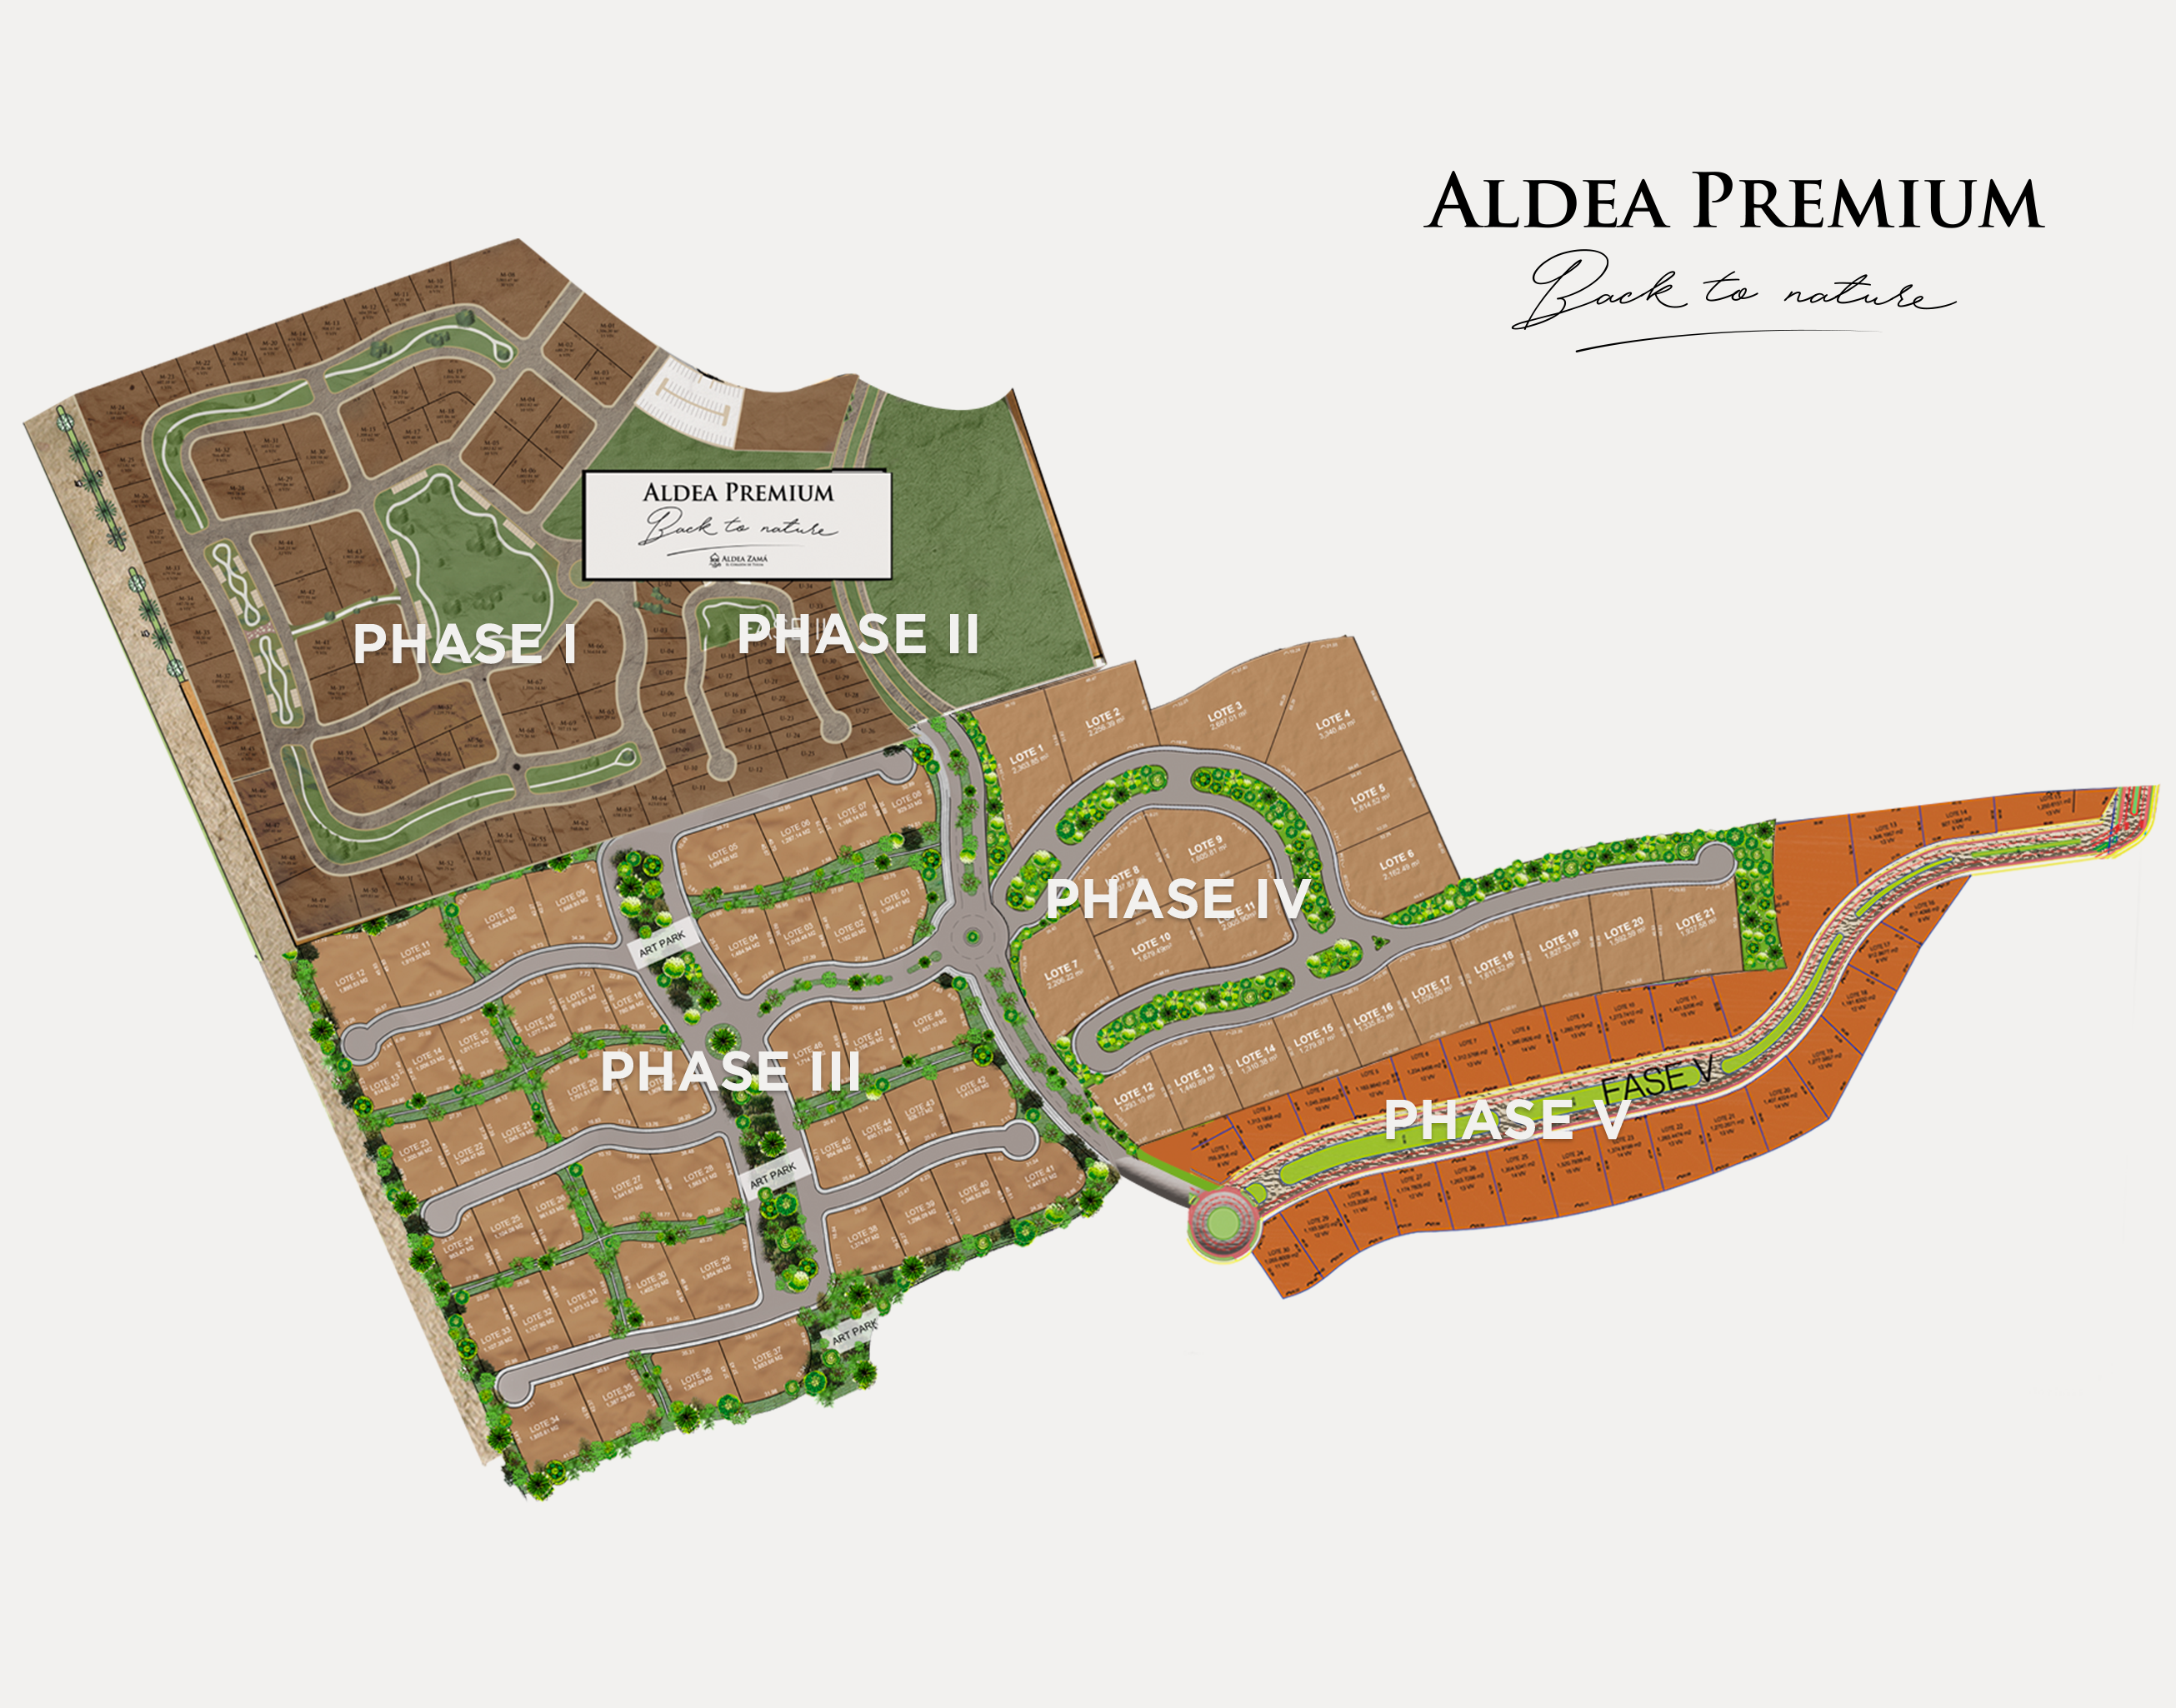 Fifth phase of this successful project in Tulum - Aldea Premium Master Plan